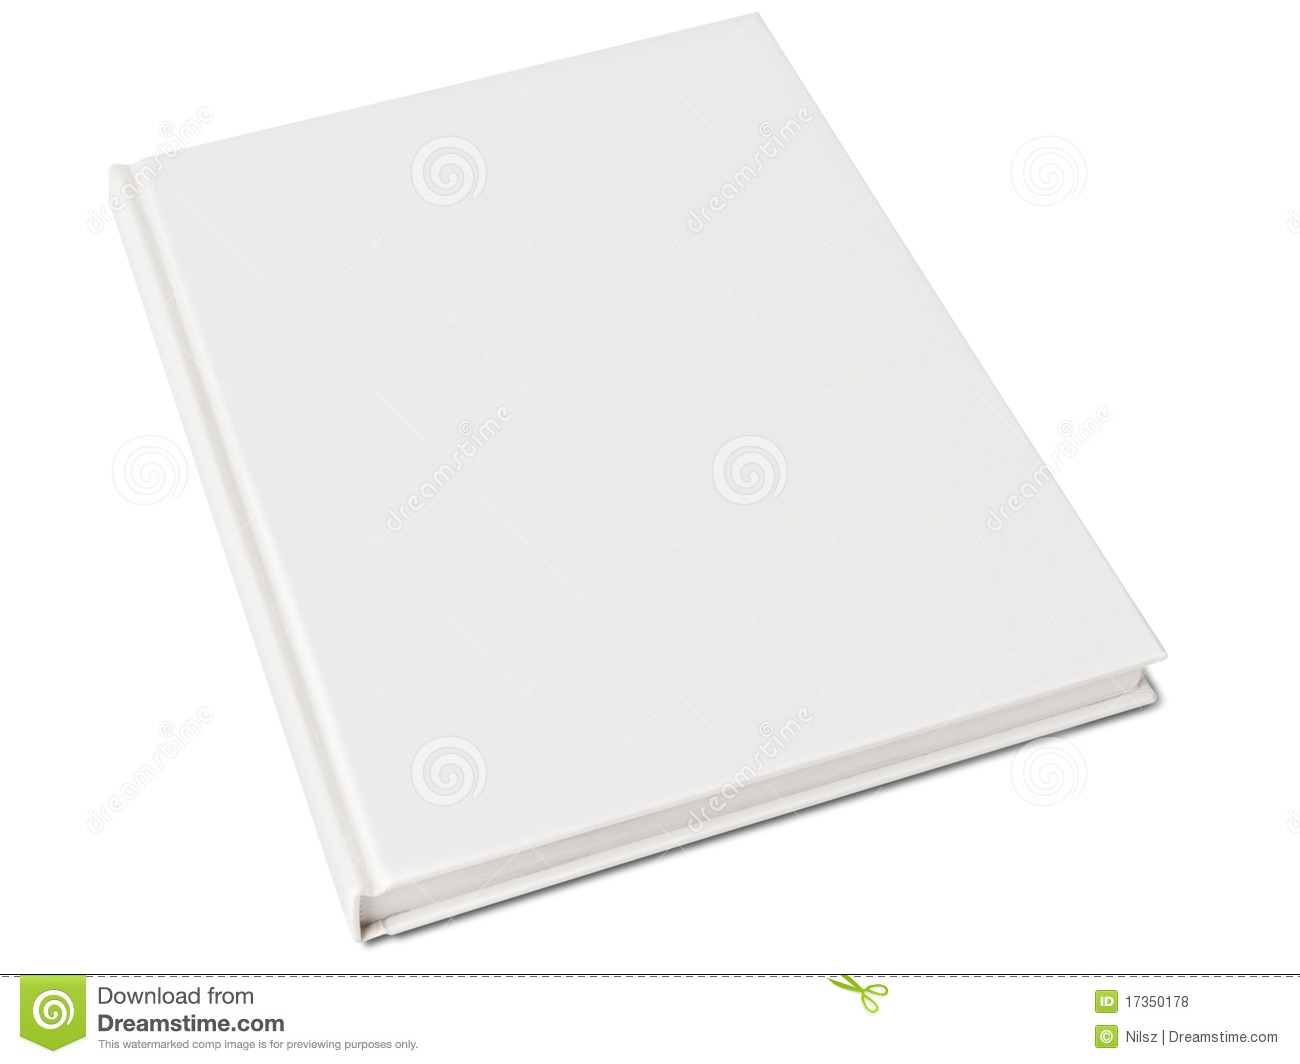 Blank Hardcover Book Royalty Free Stock Photos - Image: 17350178